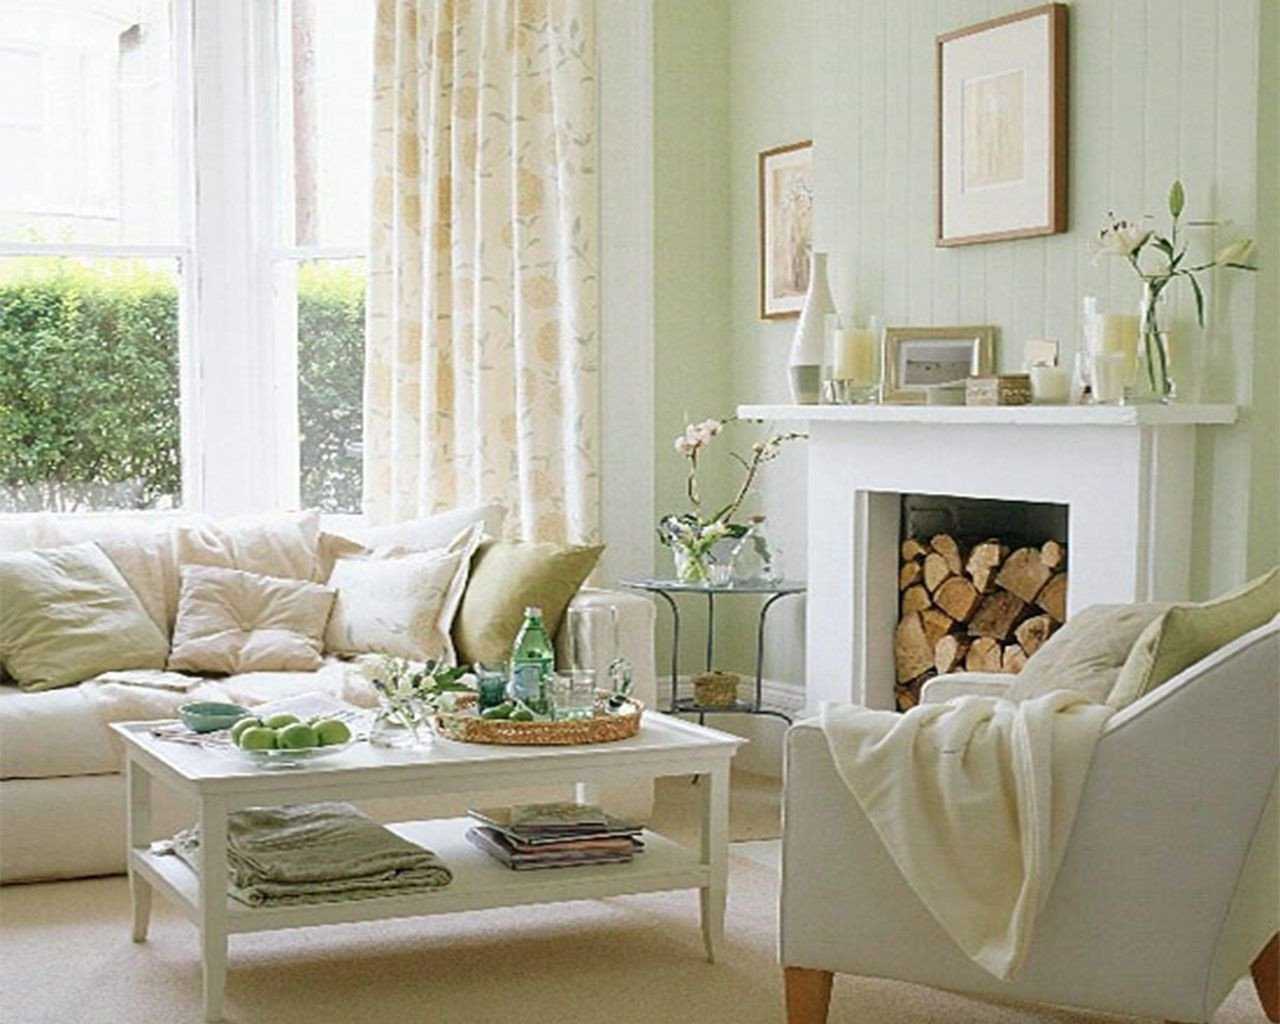 White Paint Guide for Living Room Decorating Elegant Creamy White Living Room with Accents Of Very Light Green and Blue